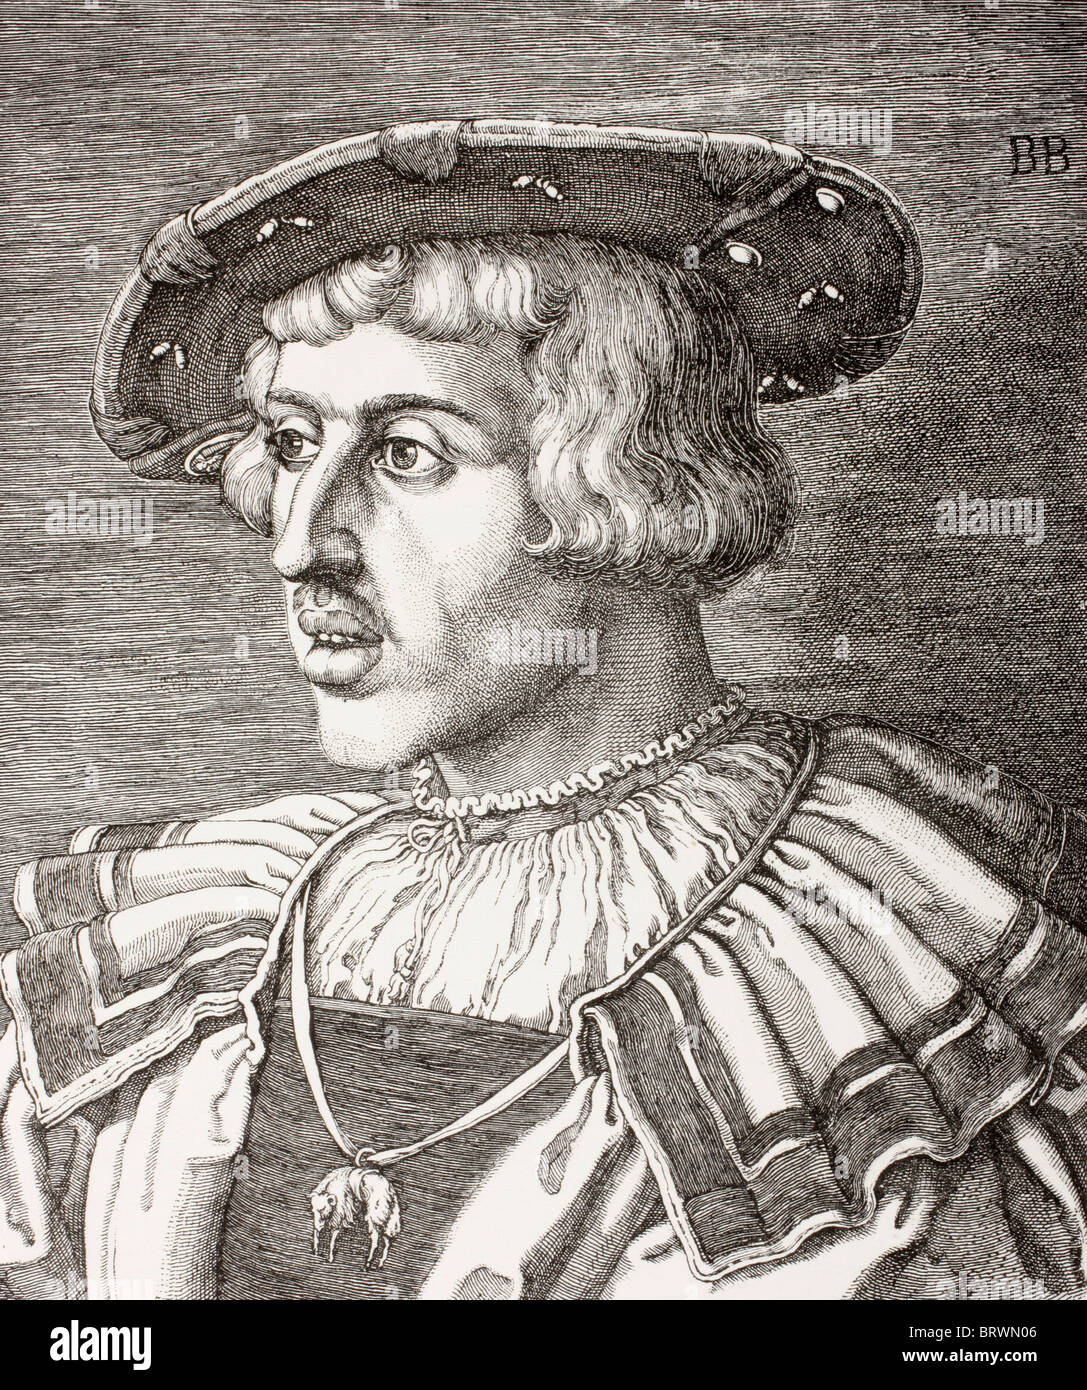 King Ferdinand I, 1503 – 1564. Monarch from House of Habsburg. Holy Roman Emperor. King of Bohemia and Hungary. - Stock Image